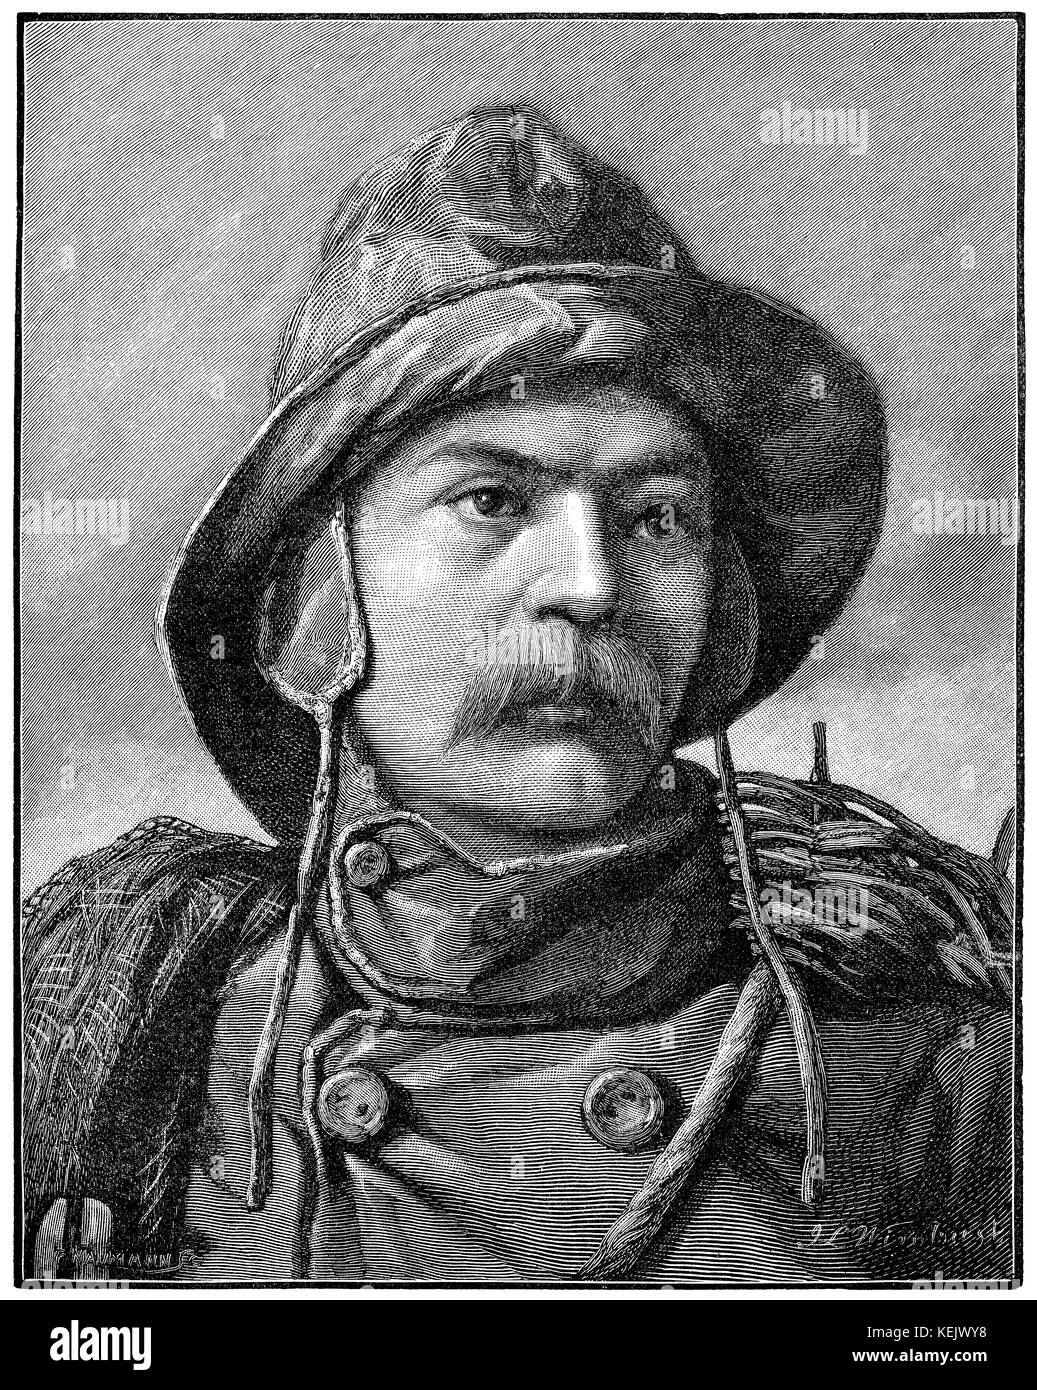 1890 engraving of a fisherman in sou'wester titled 'A Bonnie Fisher Laddie.' Drawing by J.L. Wimbush. - Stock Image